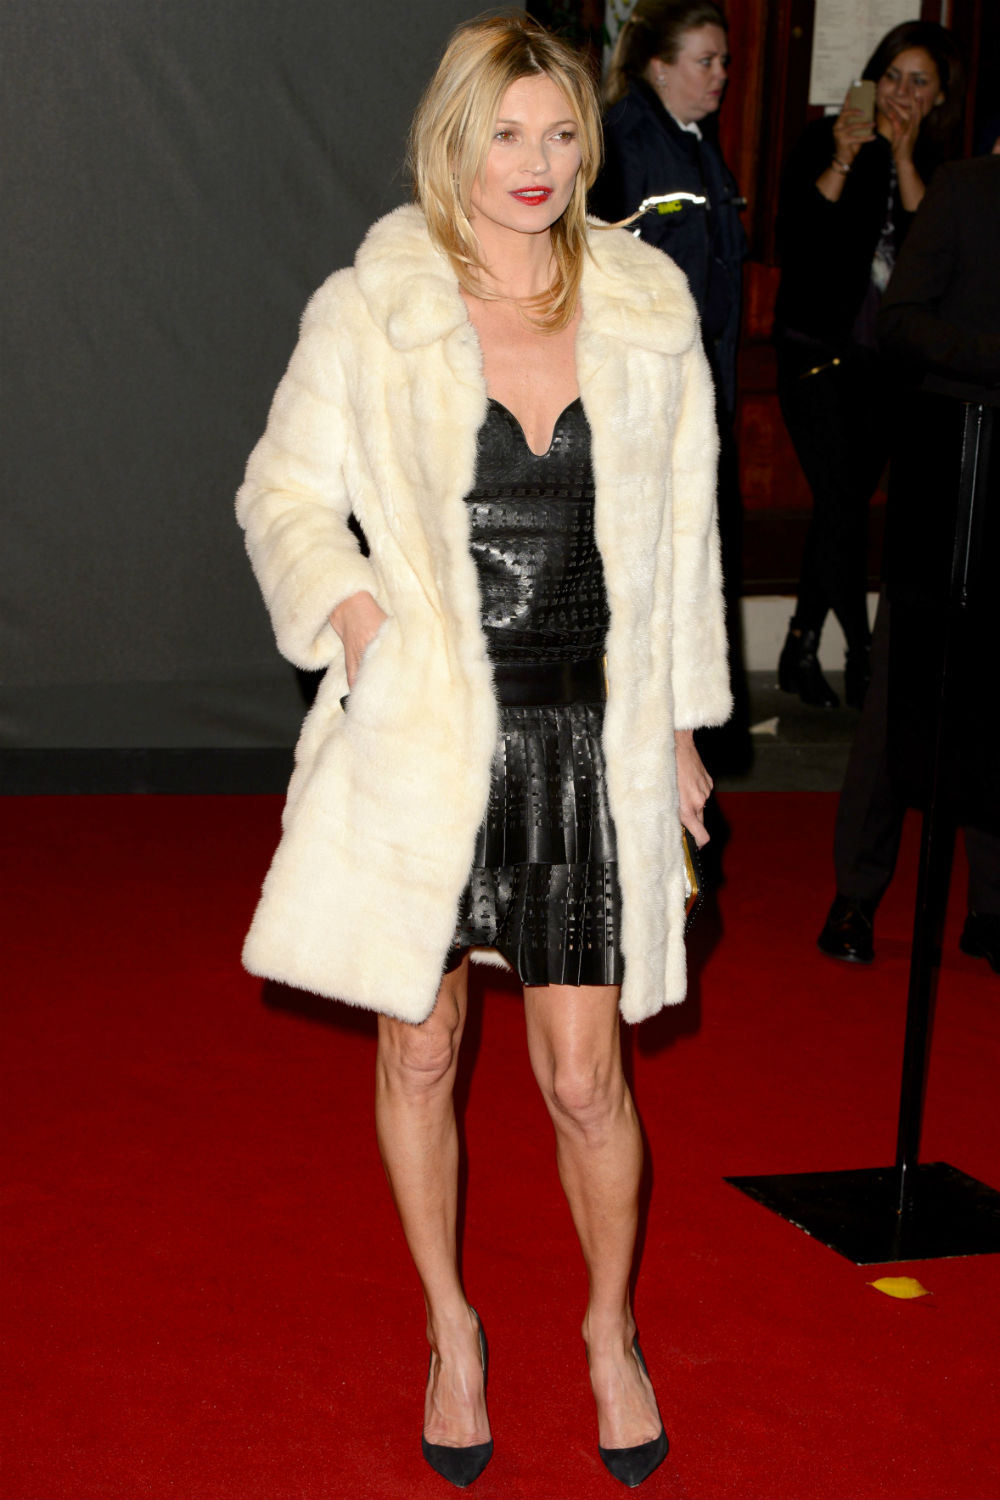 lui magazine cover kate moss strips down for cheeky magazine cover